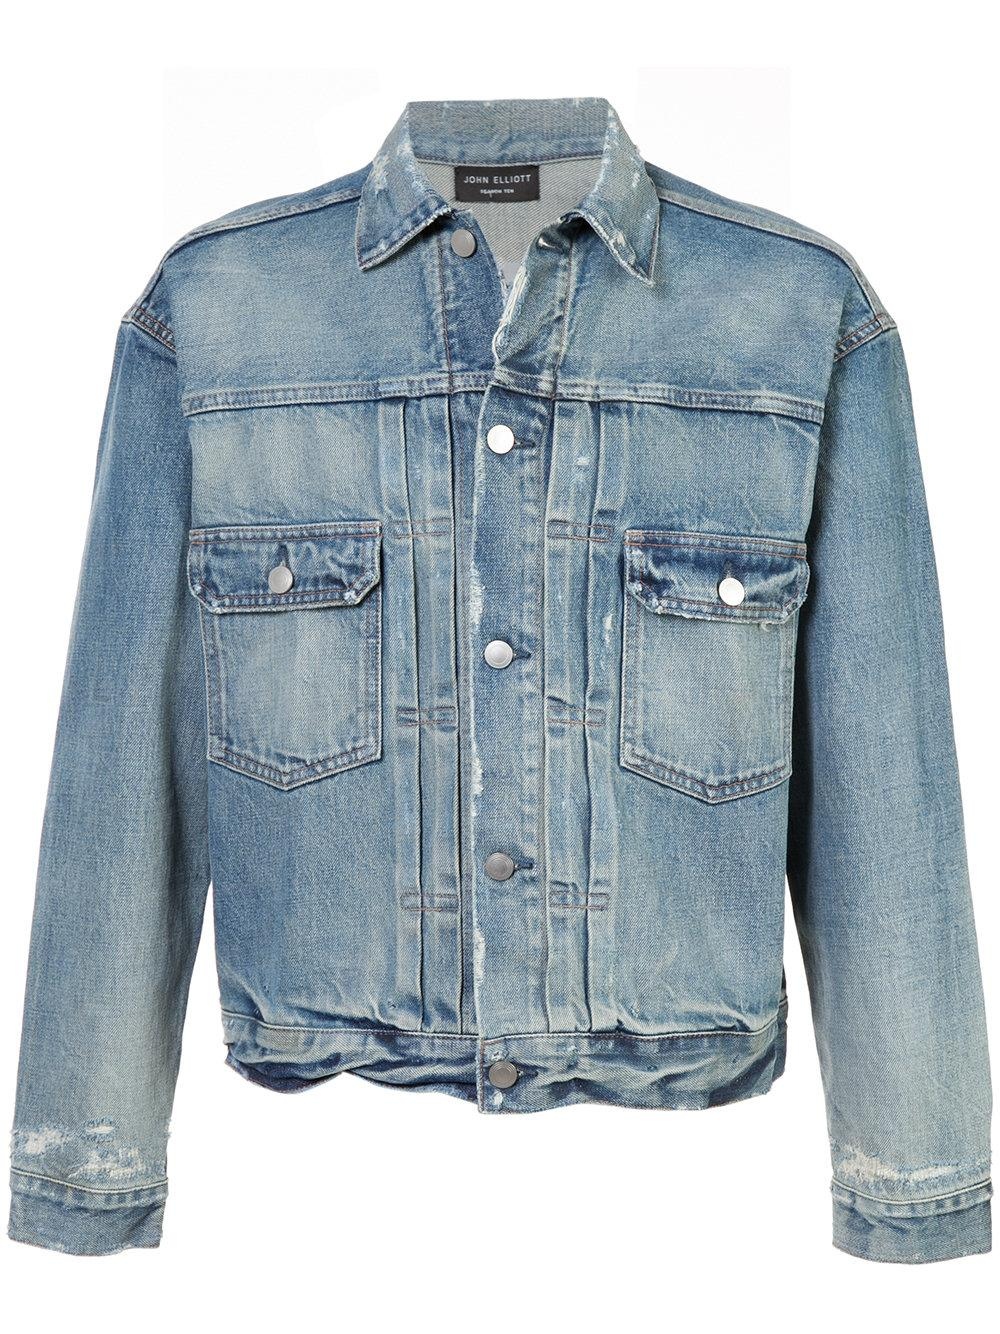 John Elliott Denim Jacket - Blue